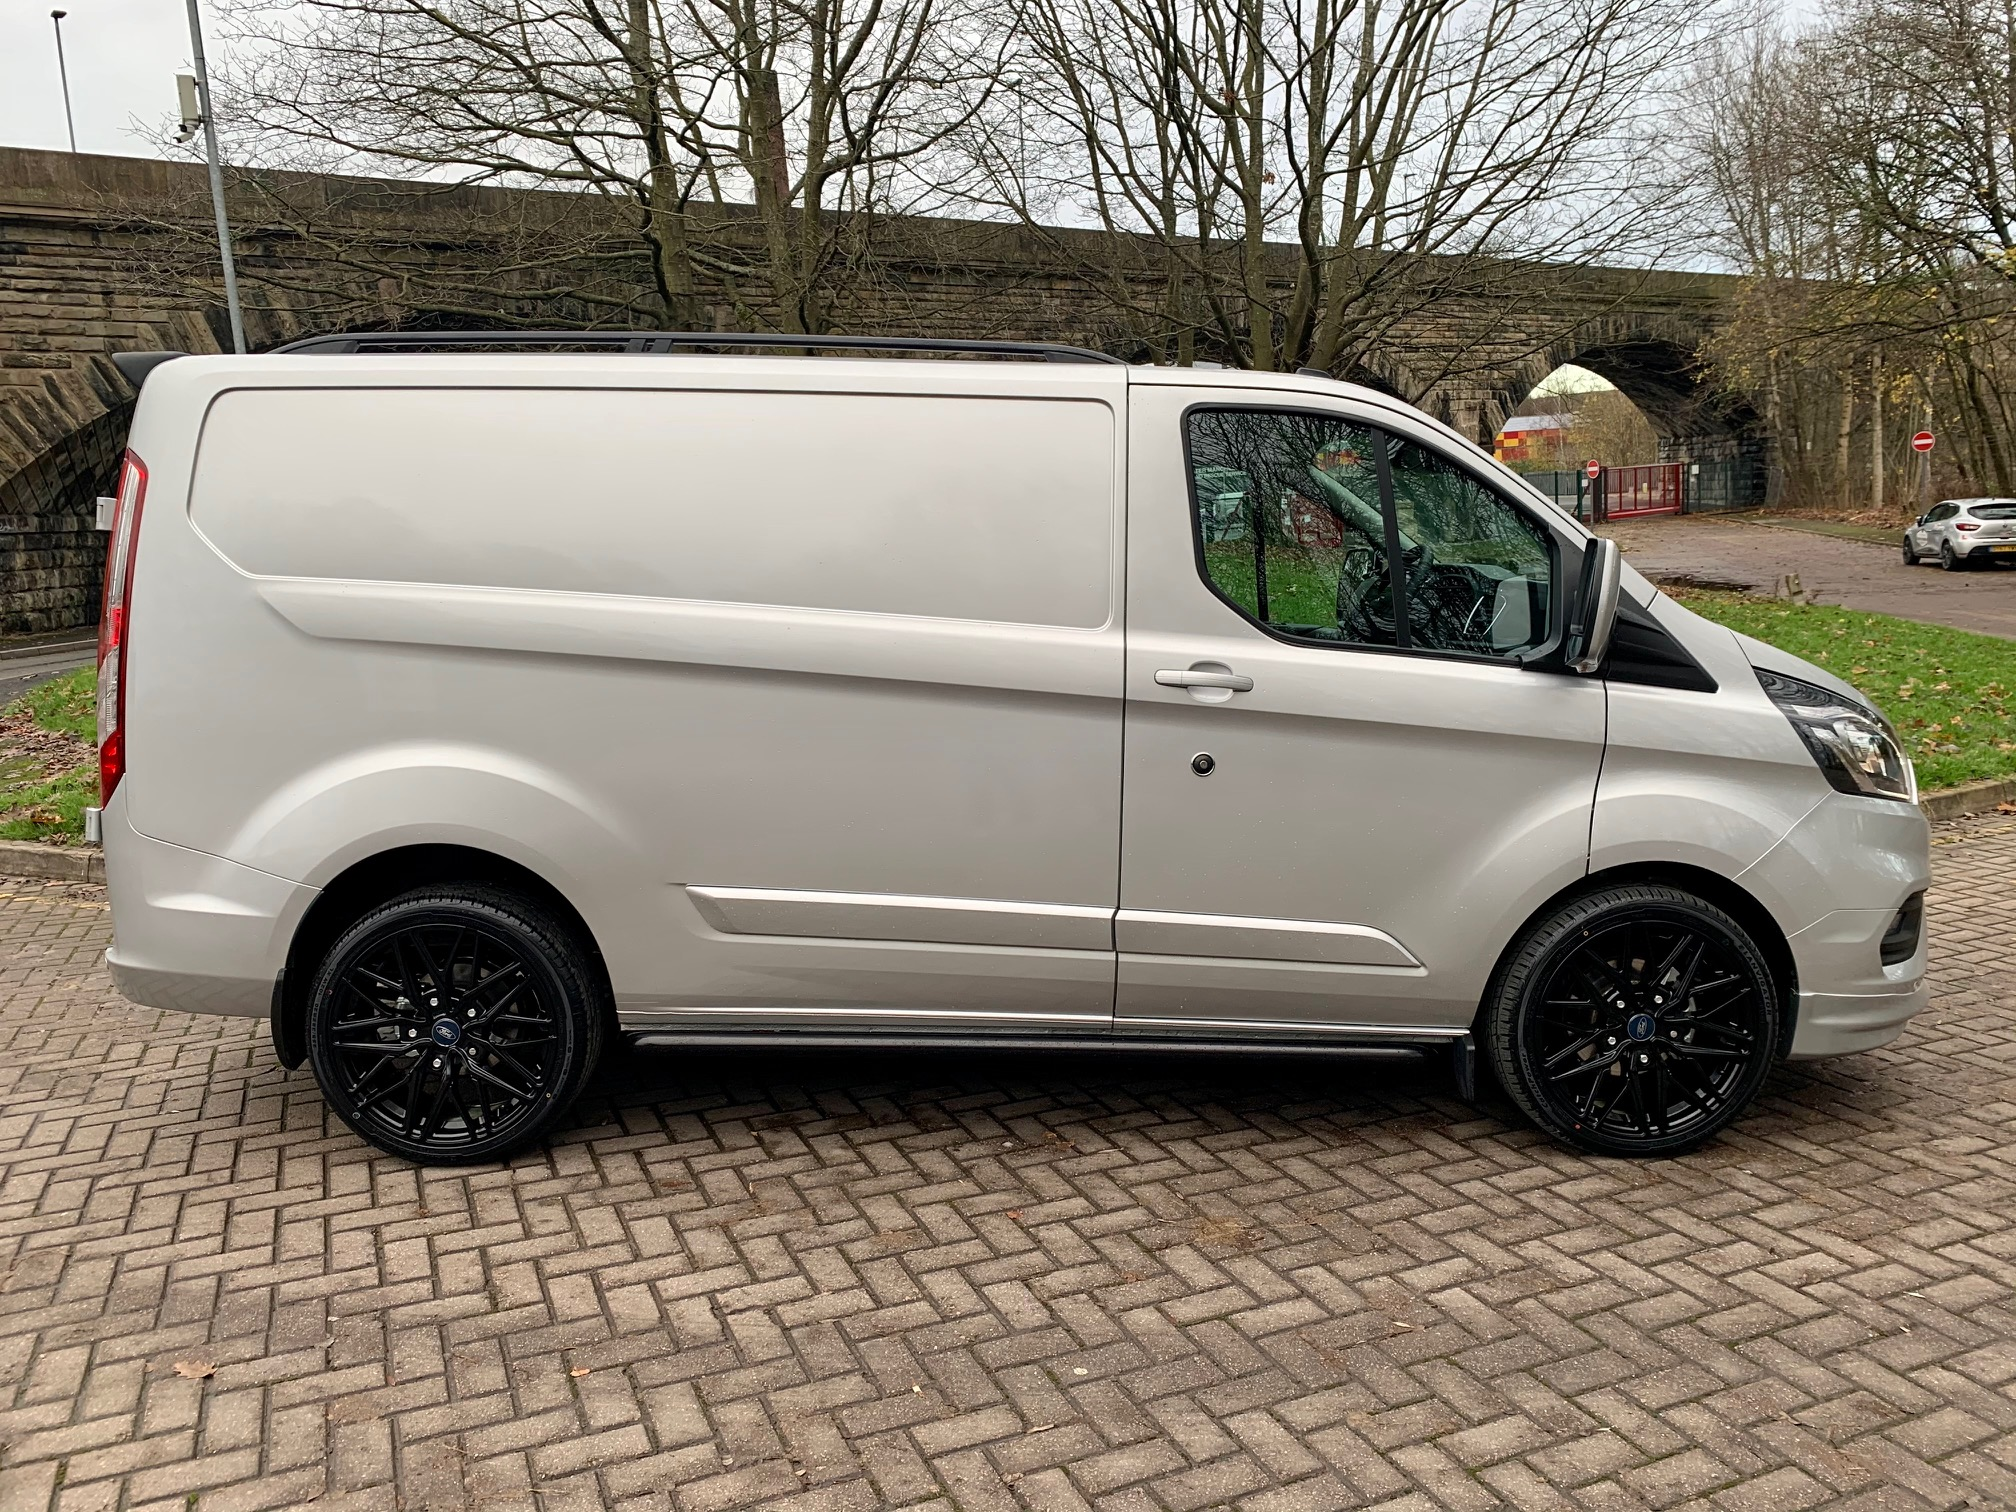 IMG_8180.jpg - 300 L1 DIESEL FWD 2.0 EcoBlue 170ps Low Roof Limited Van Auto Inferno